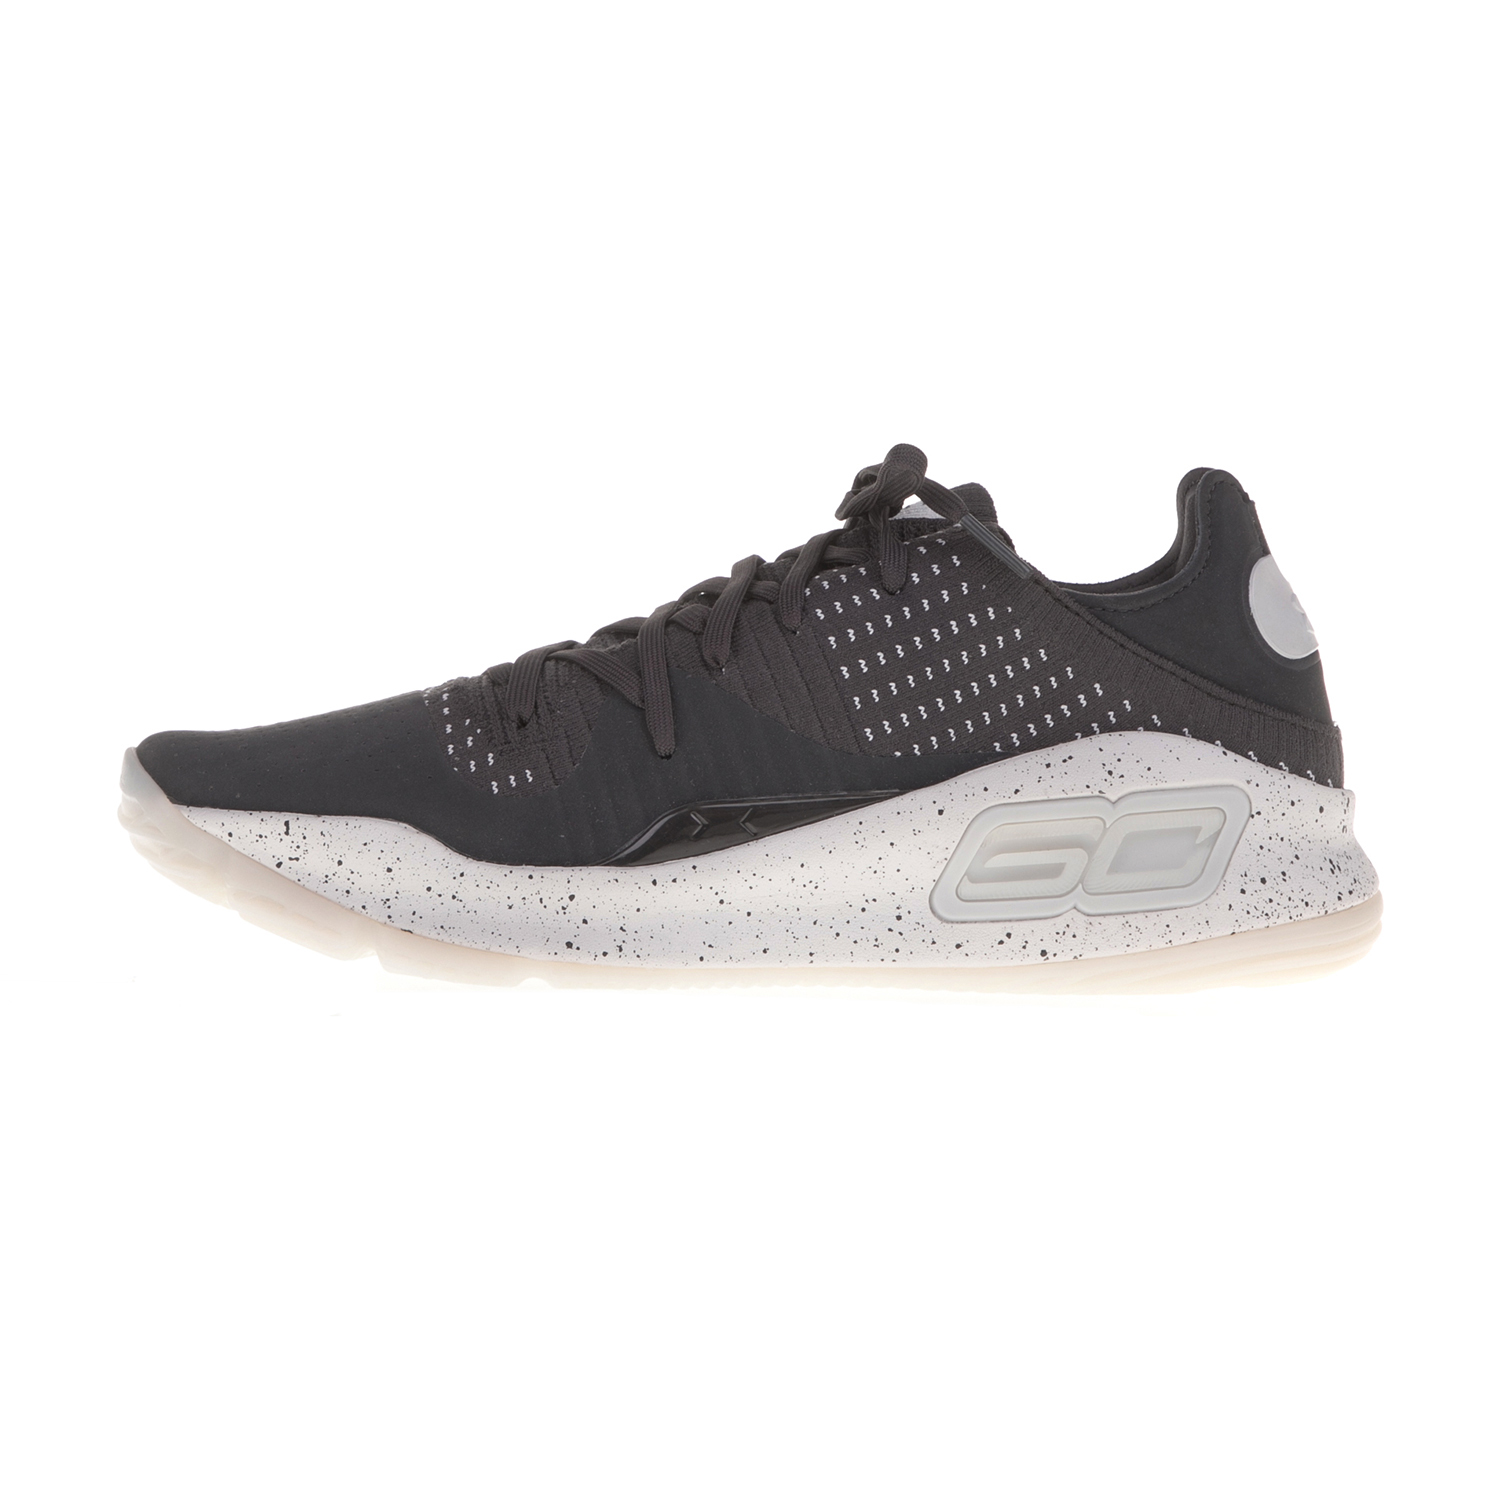 UNDER ARMOUR – Ανδρικά παπούτσια UNDER ARMOUR CURRY 4 LOW μαύρα